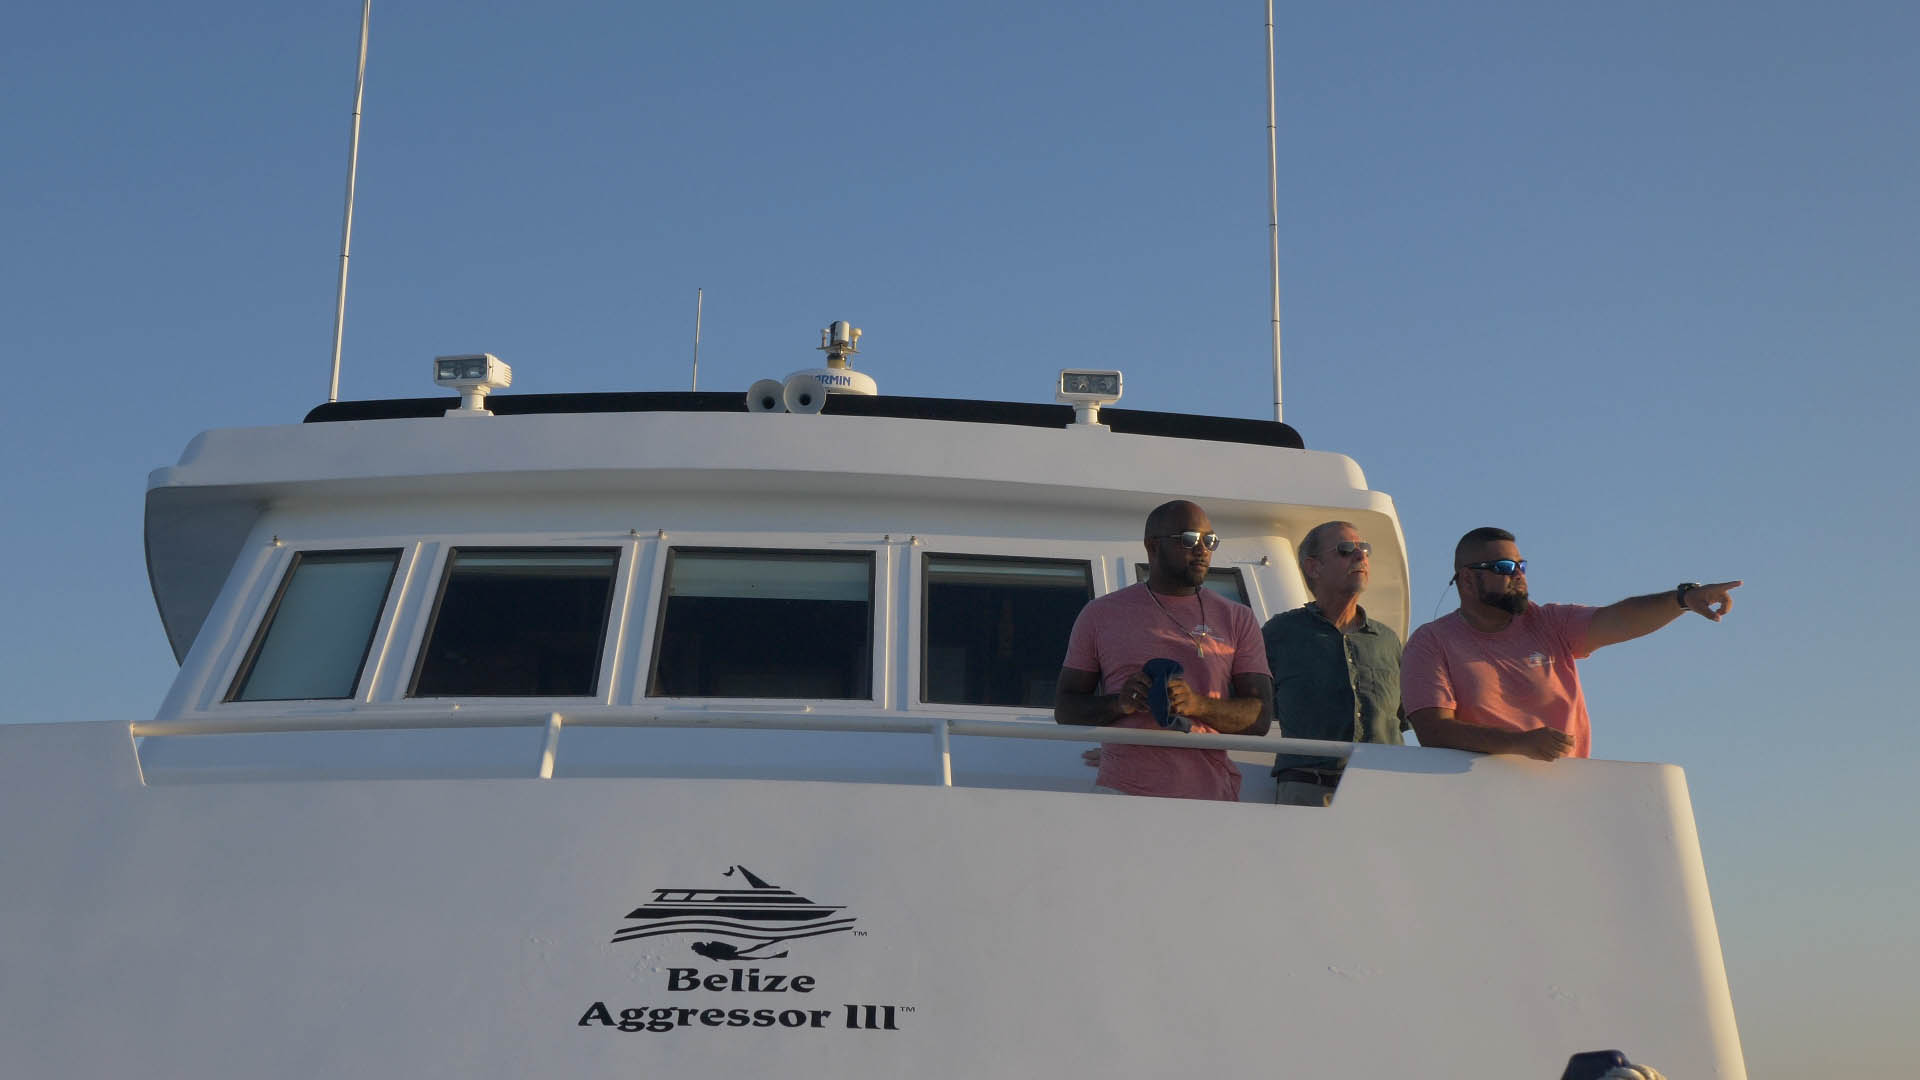 Captain and guests looking through binoculars